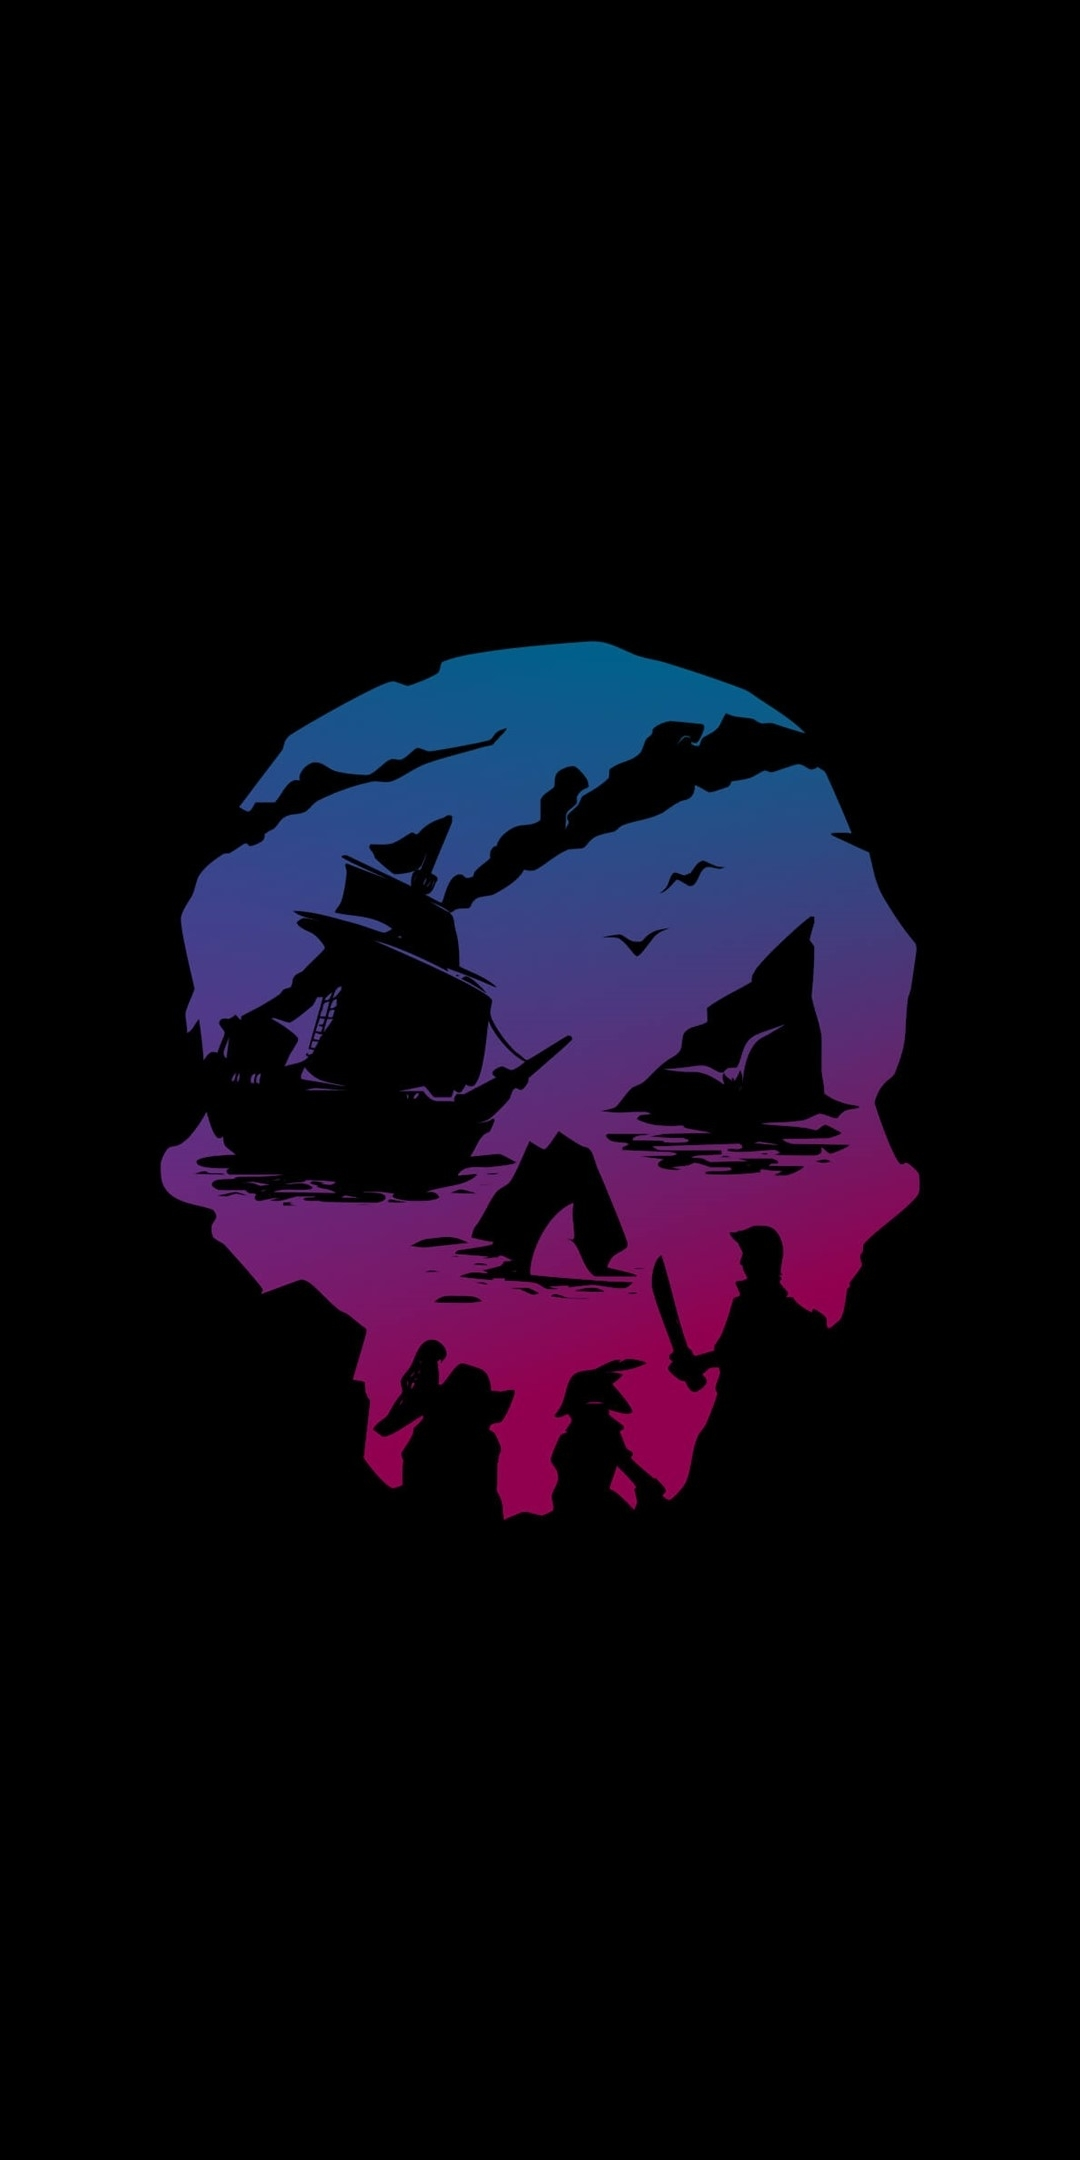 1080x2160 Sea Of Thieves Game 4k One Plus 5t Honor 7x Honor View 10 Lg Q6 Wallpaper Hd Minimalist 4k Wallpapers Images Photos And Background